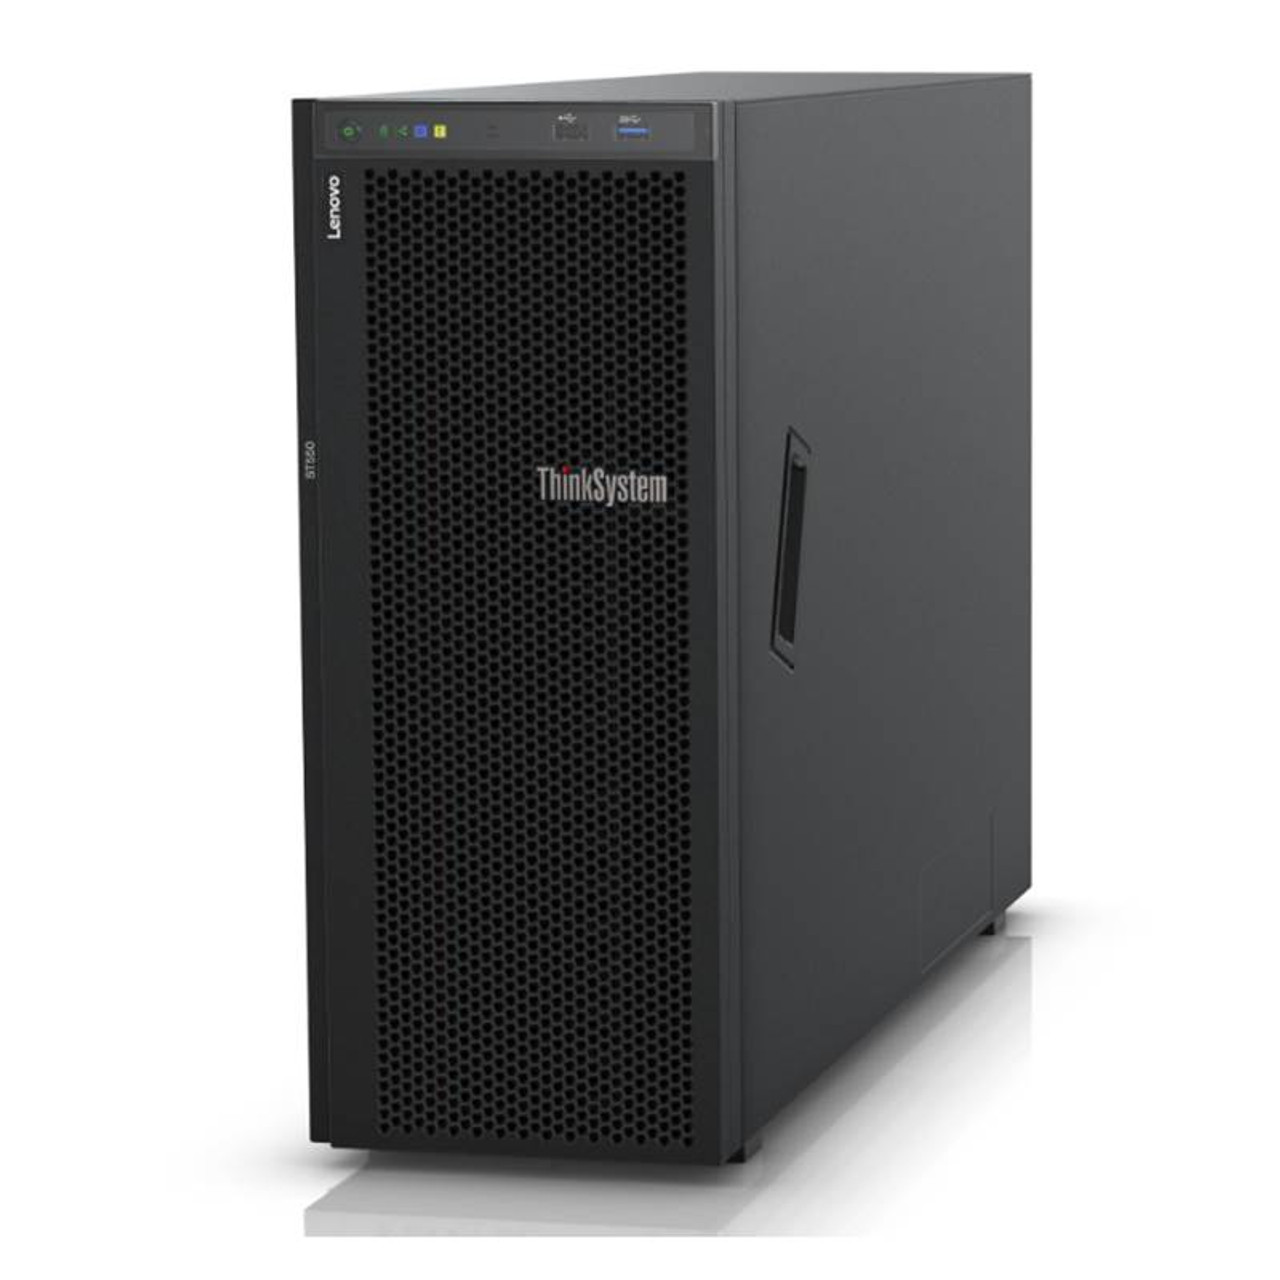 Product image for Lenovo ThinkSystem ST550 Intel Xeon 4110 16GB 1.2TB SAS (2/8) NO OS   CX Computer Superstore